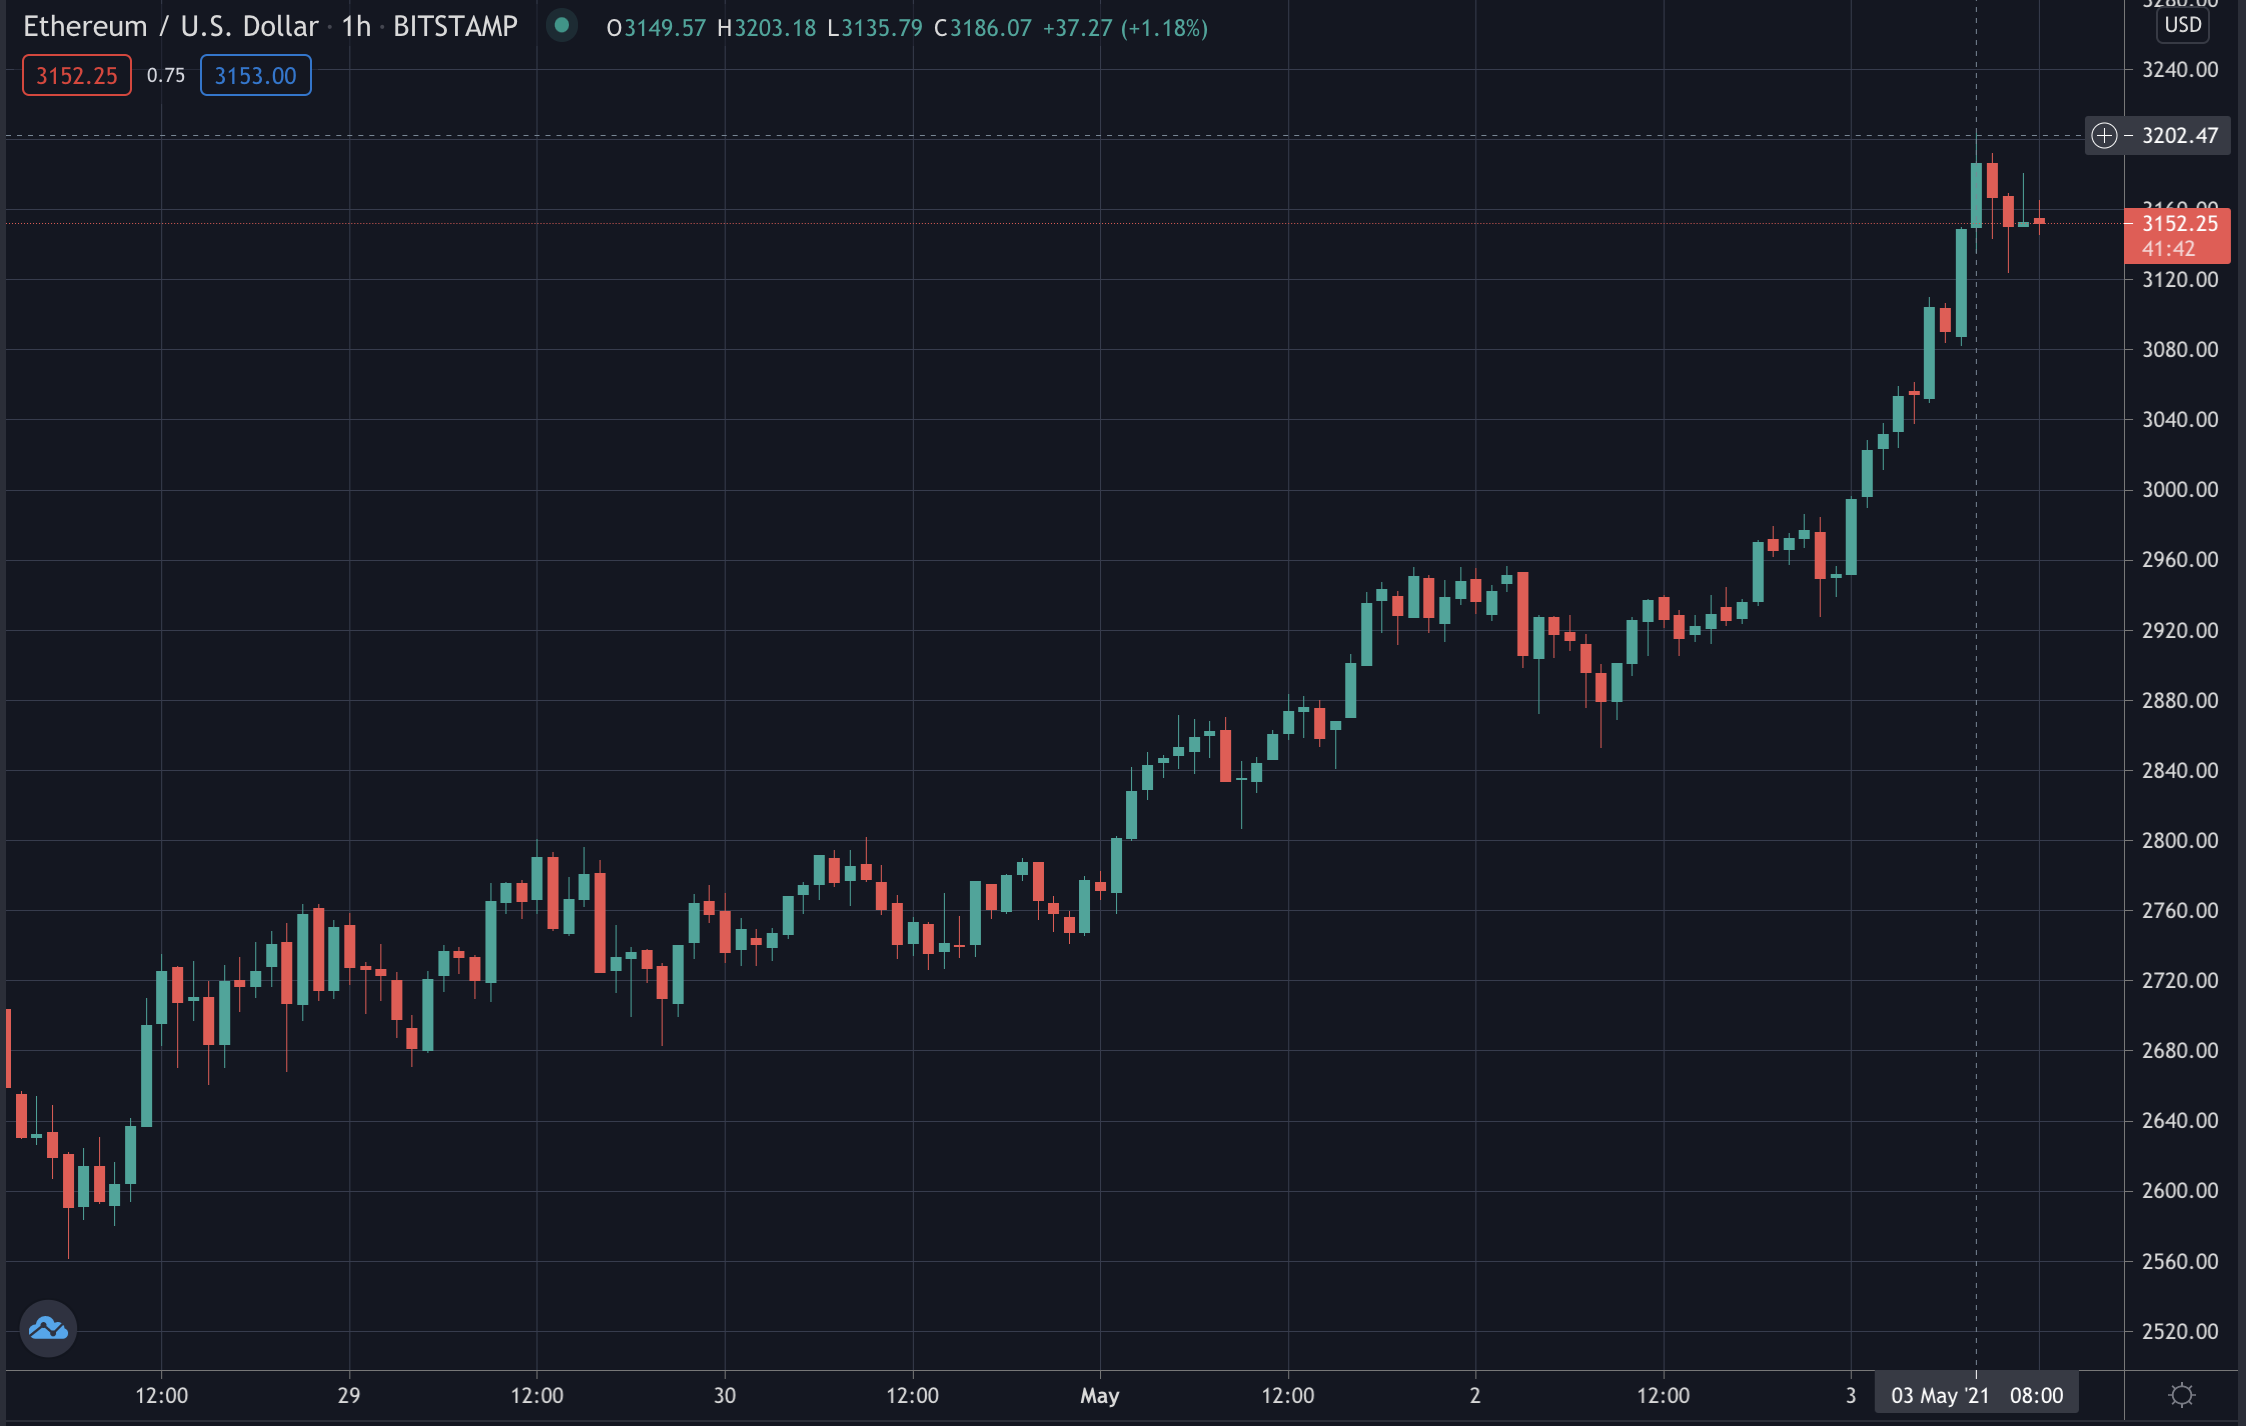 Ethereum New ATH, May 2021